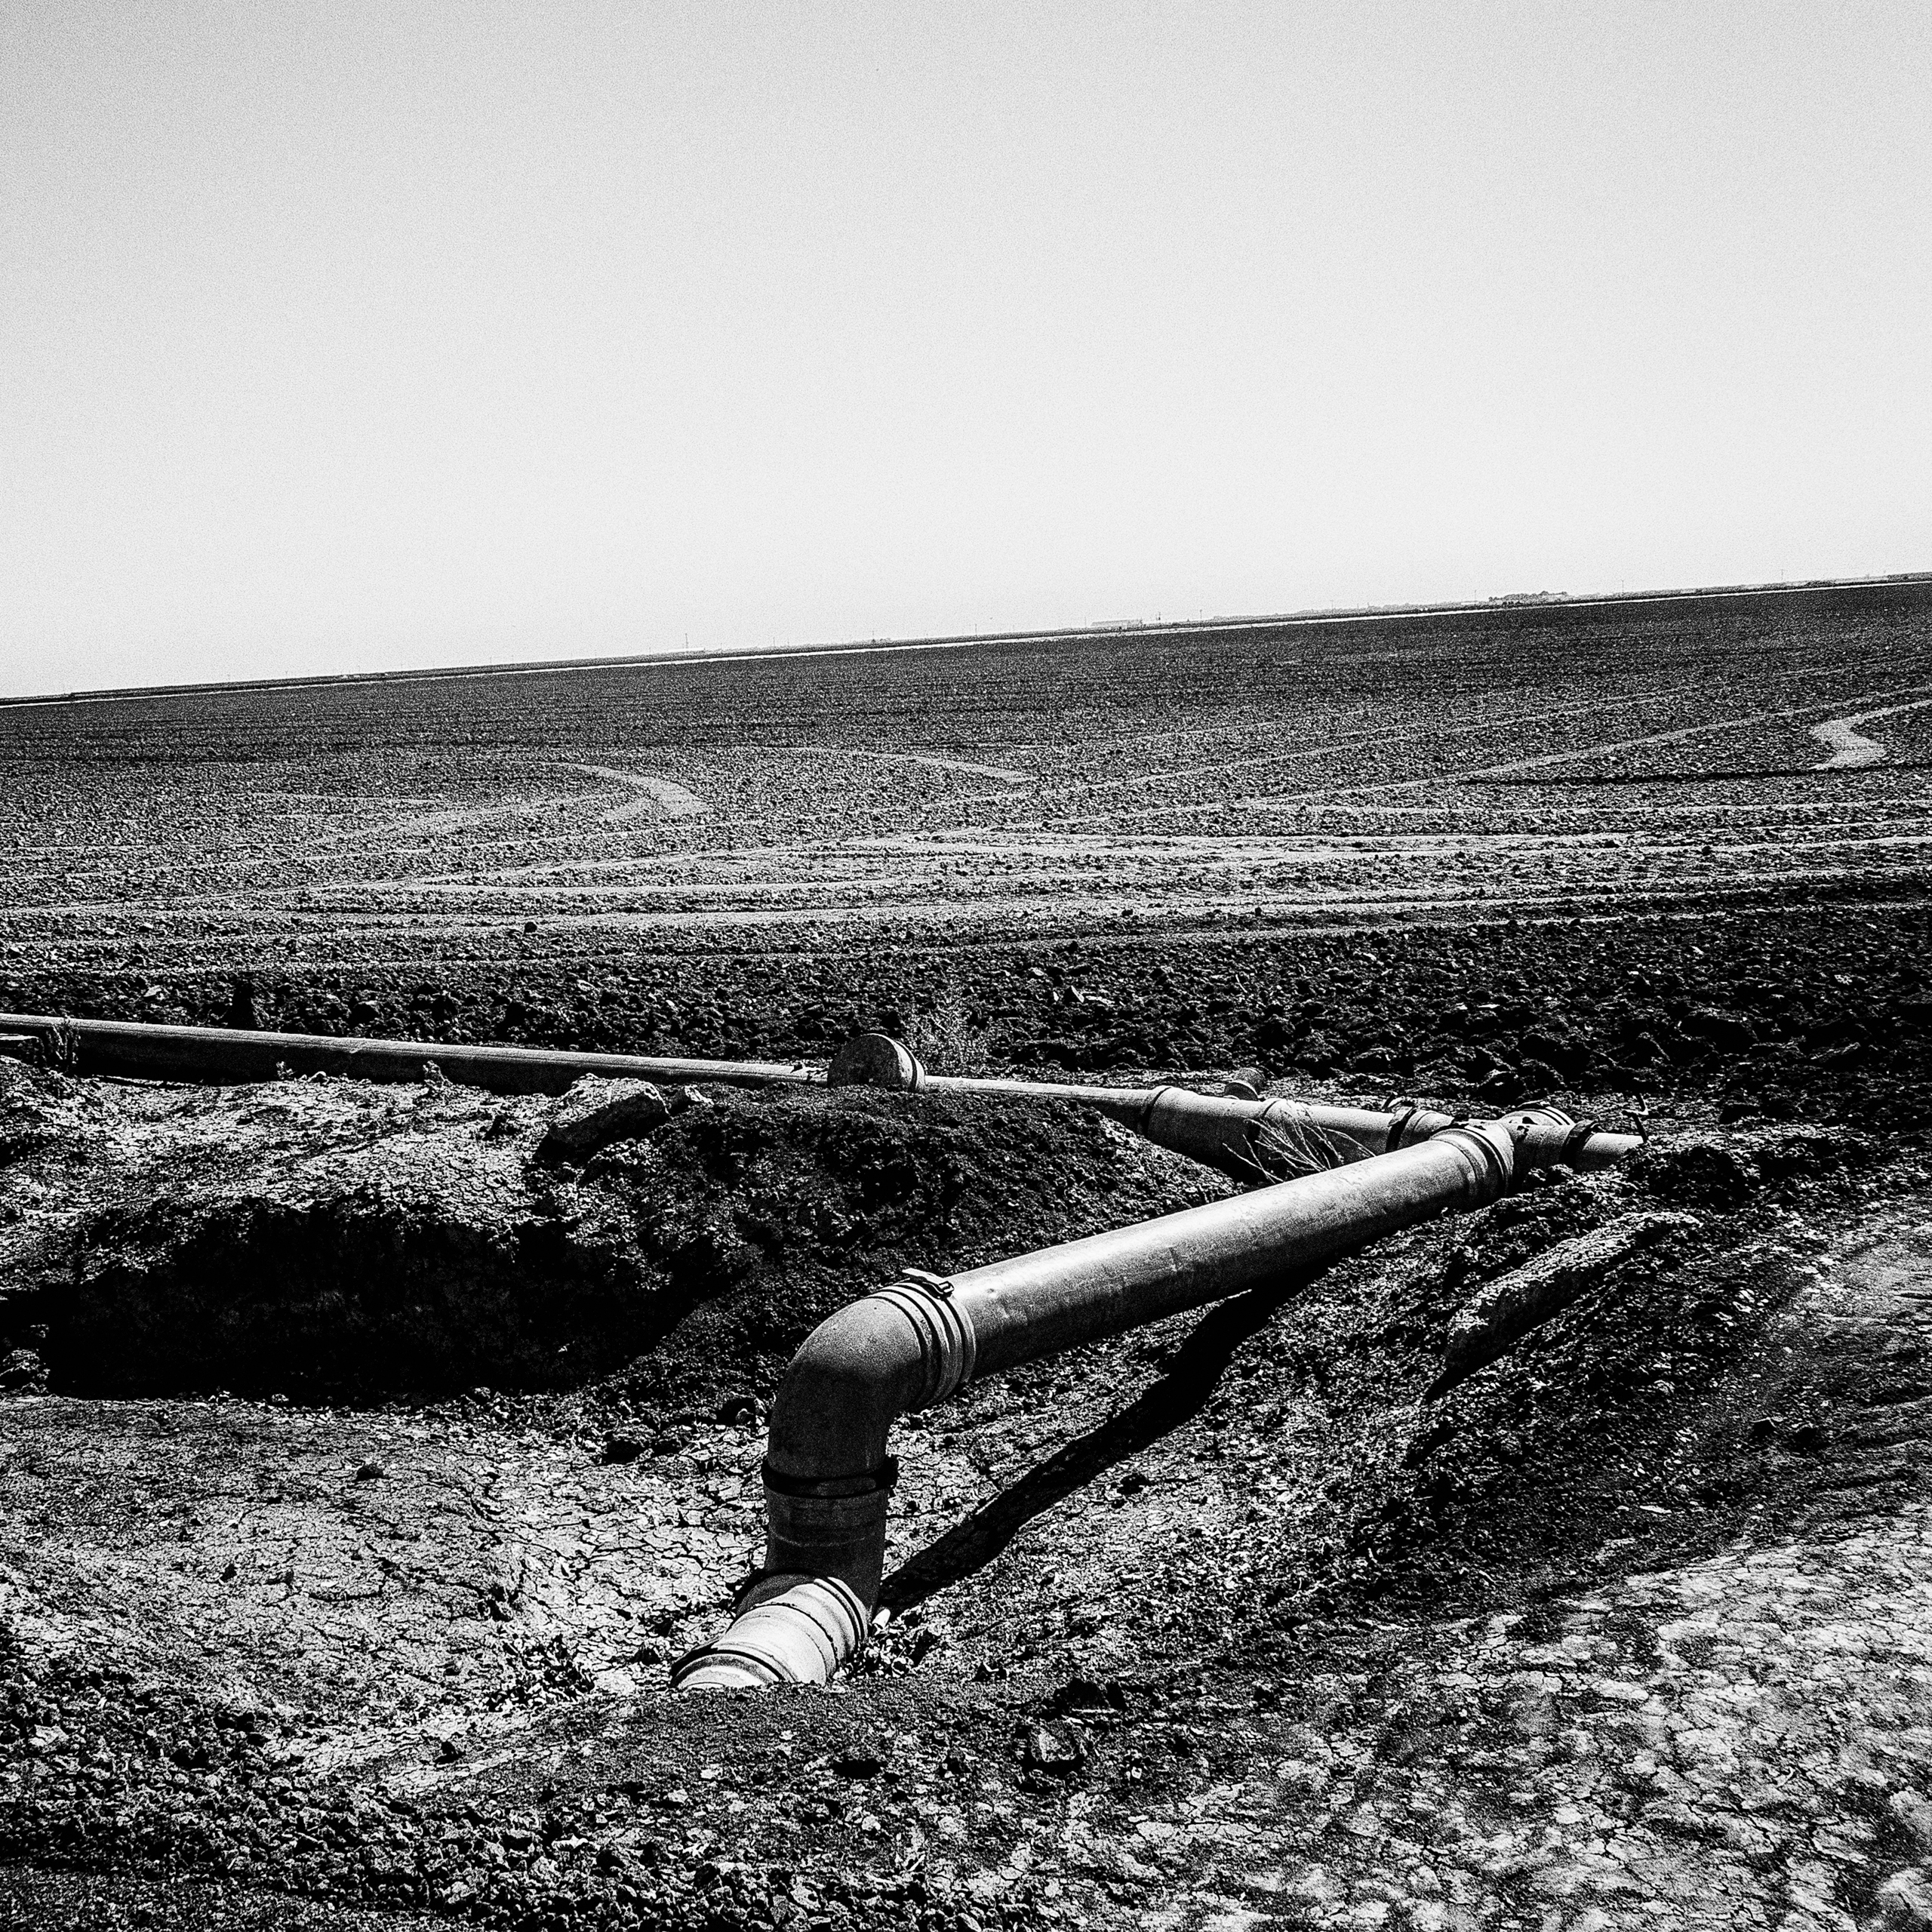 Fallowed fields.  Huron, CA.  Job losses from drought are pushing unemployment past 50% in some Central Valley towns.